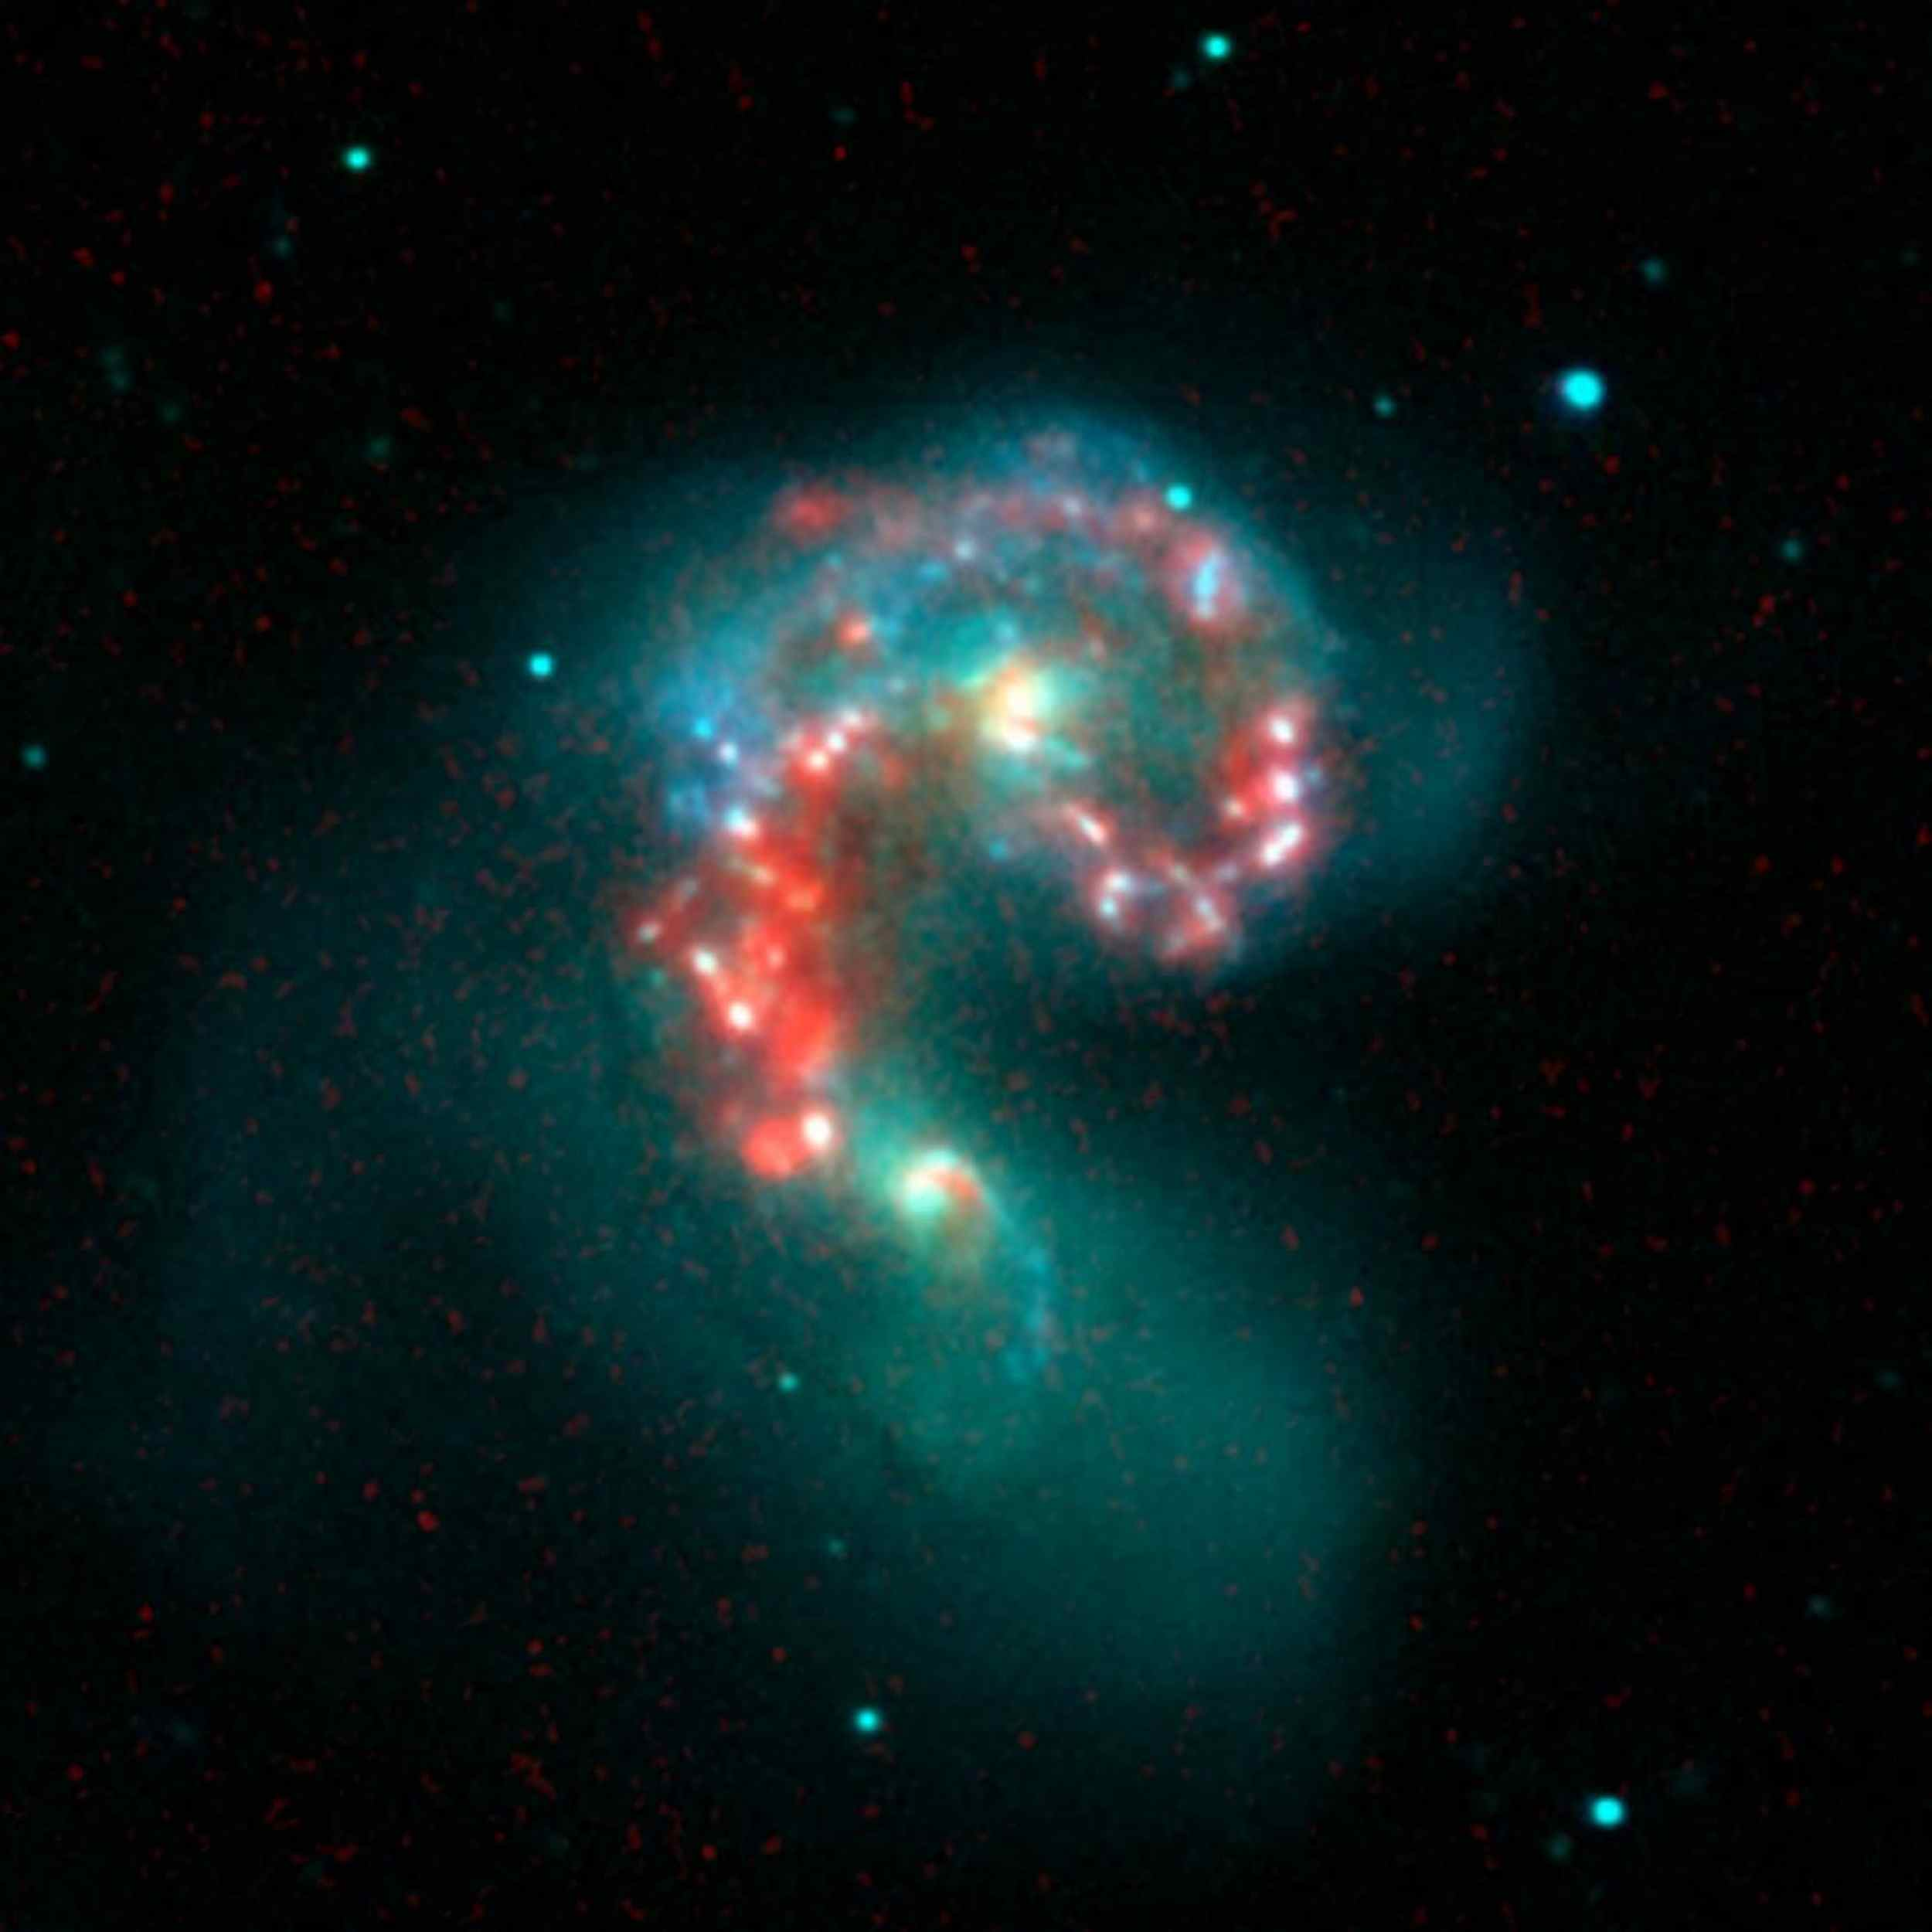 This false-color image from NASA's Spitzer Space Telescope reveals hidden populations of newborn stars at the heart of the colliding 'Antennae' galaxies. These two galaxies are known individually as NGC 4038 and 4039.